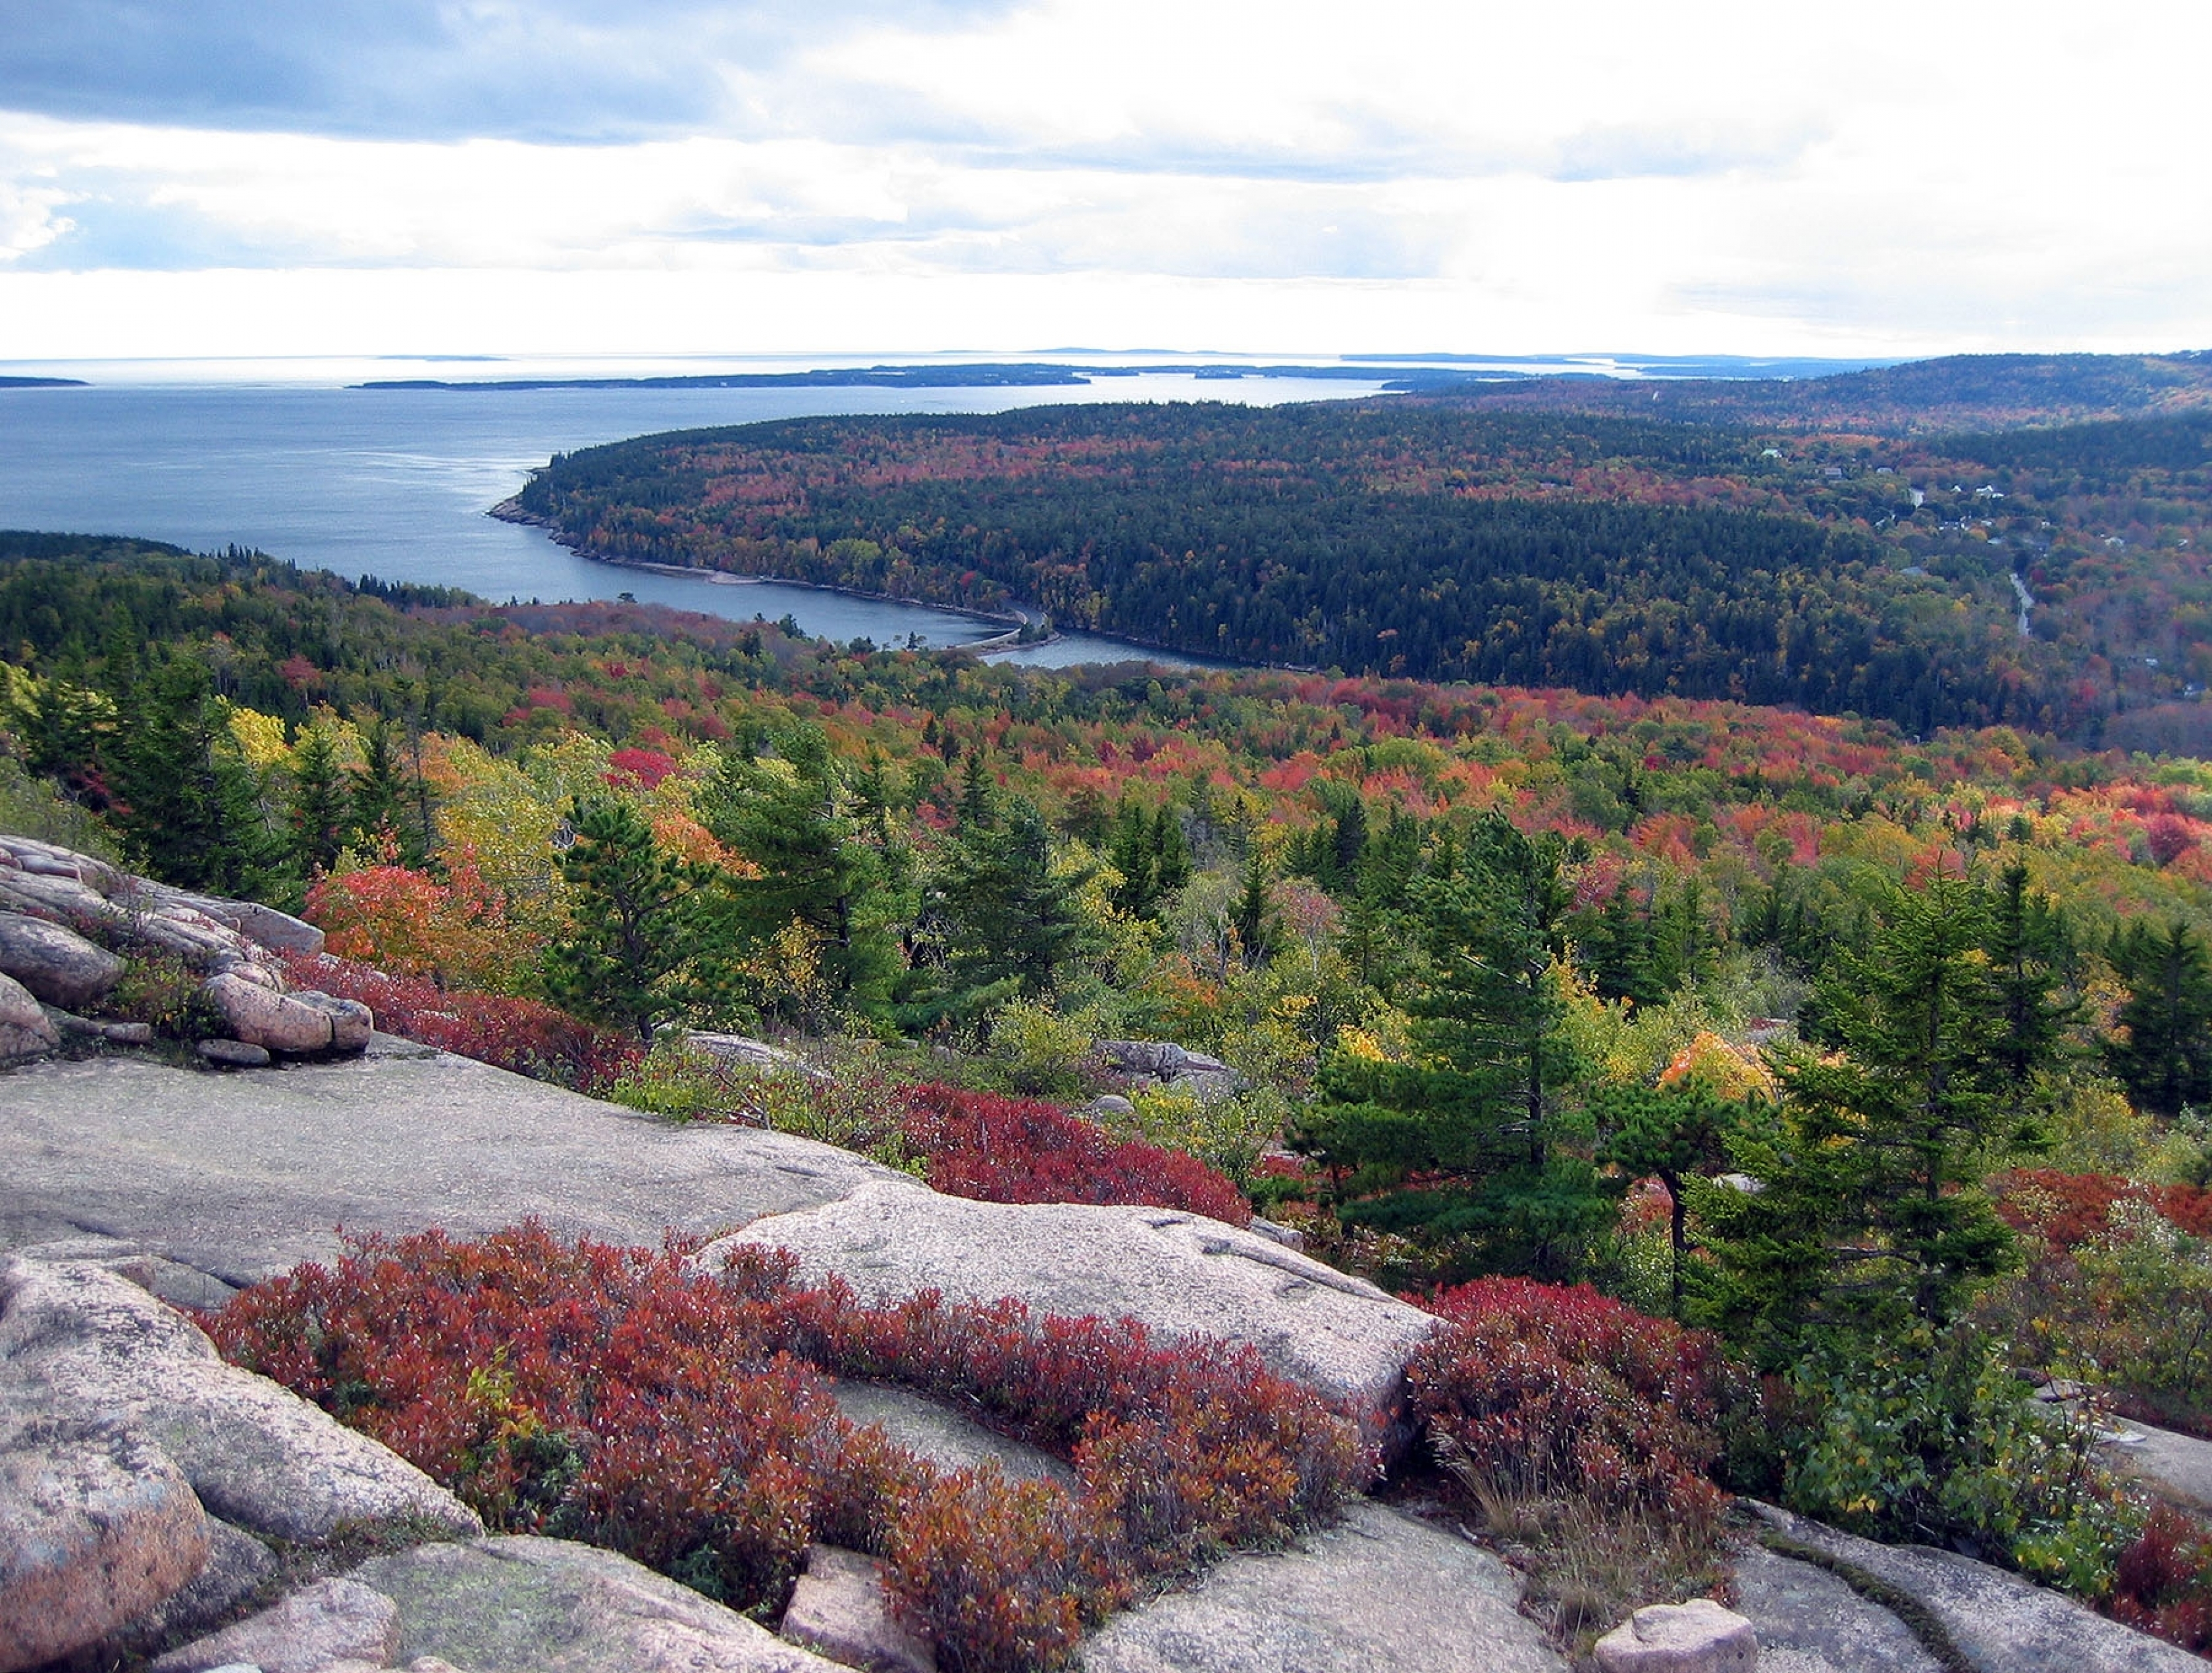 View from on top of Gorham Mountain onto the ocean and forest of green, reds, and yellows, at Acadia National Park